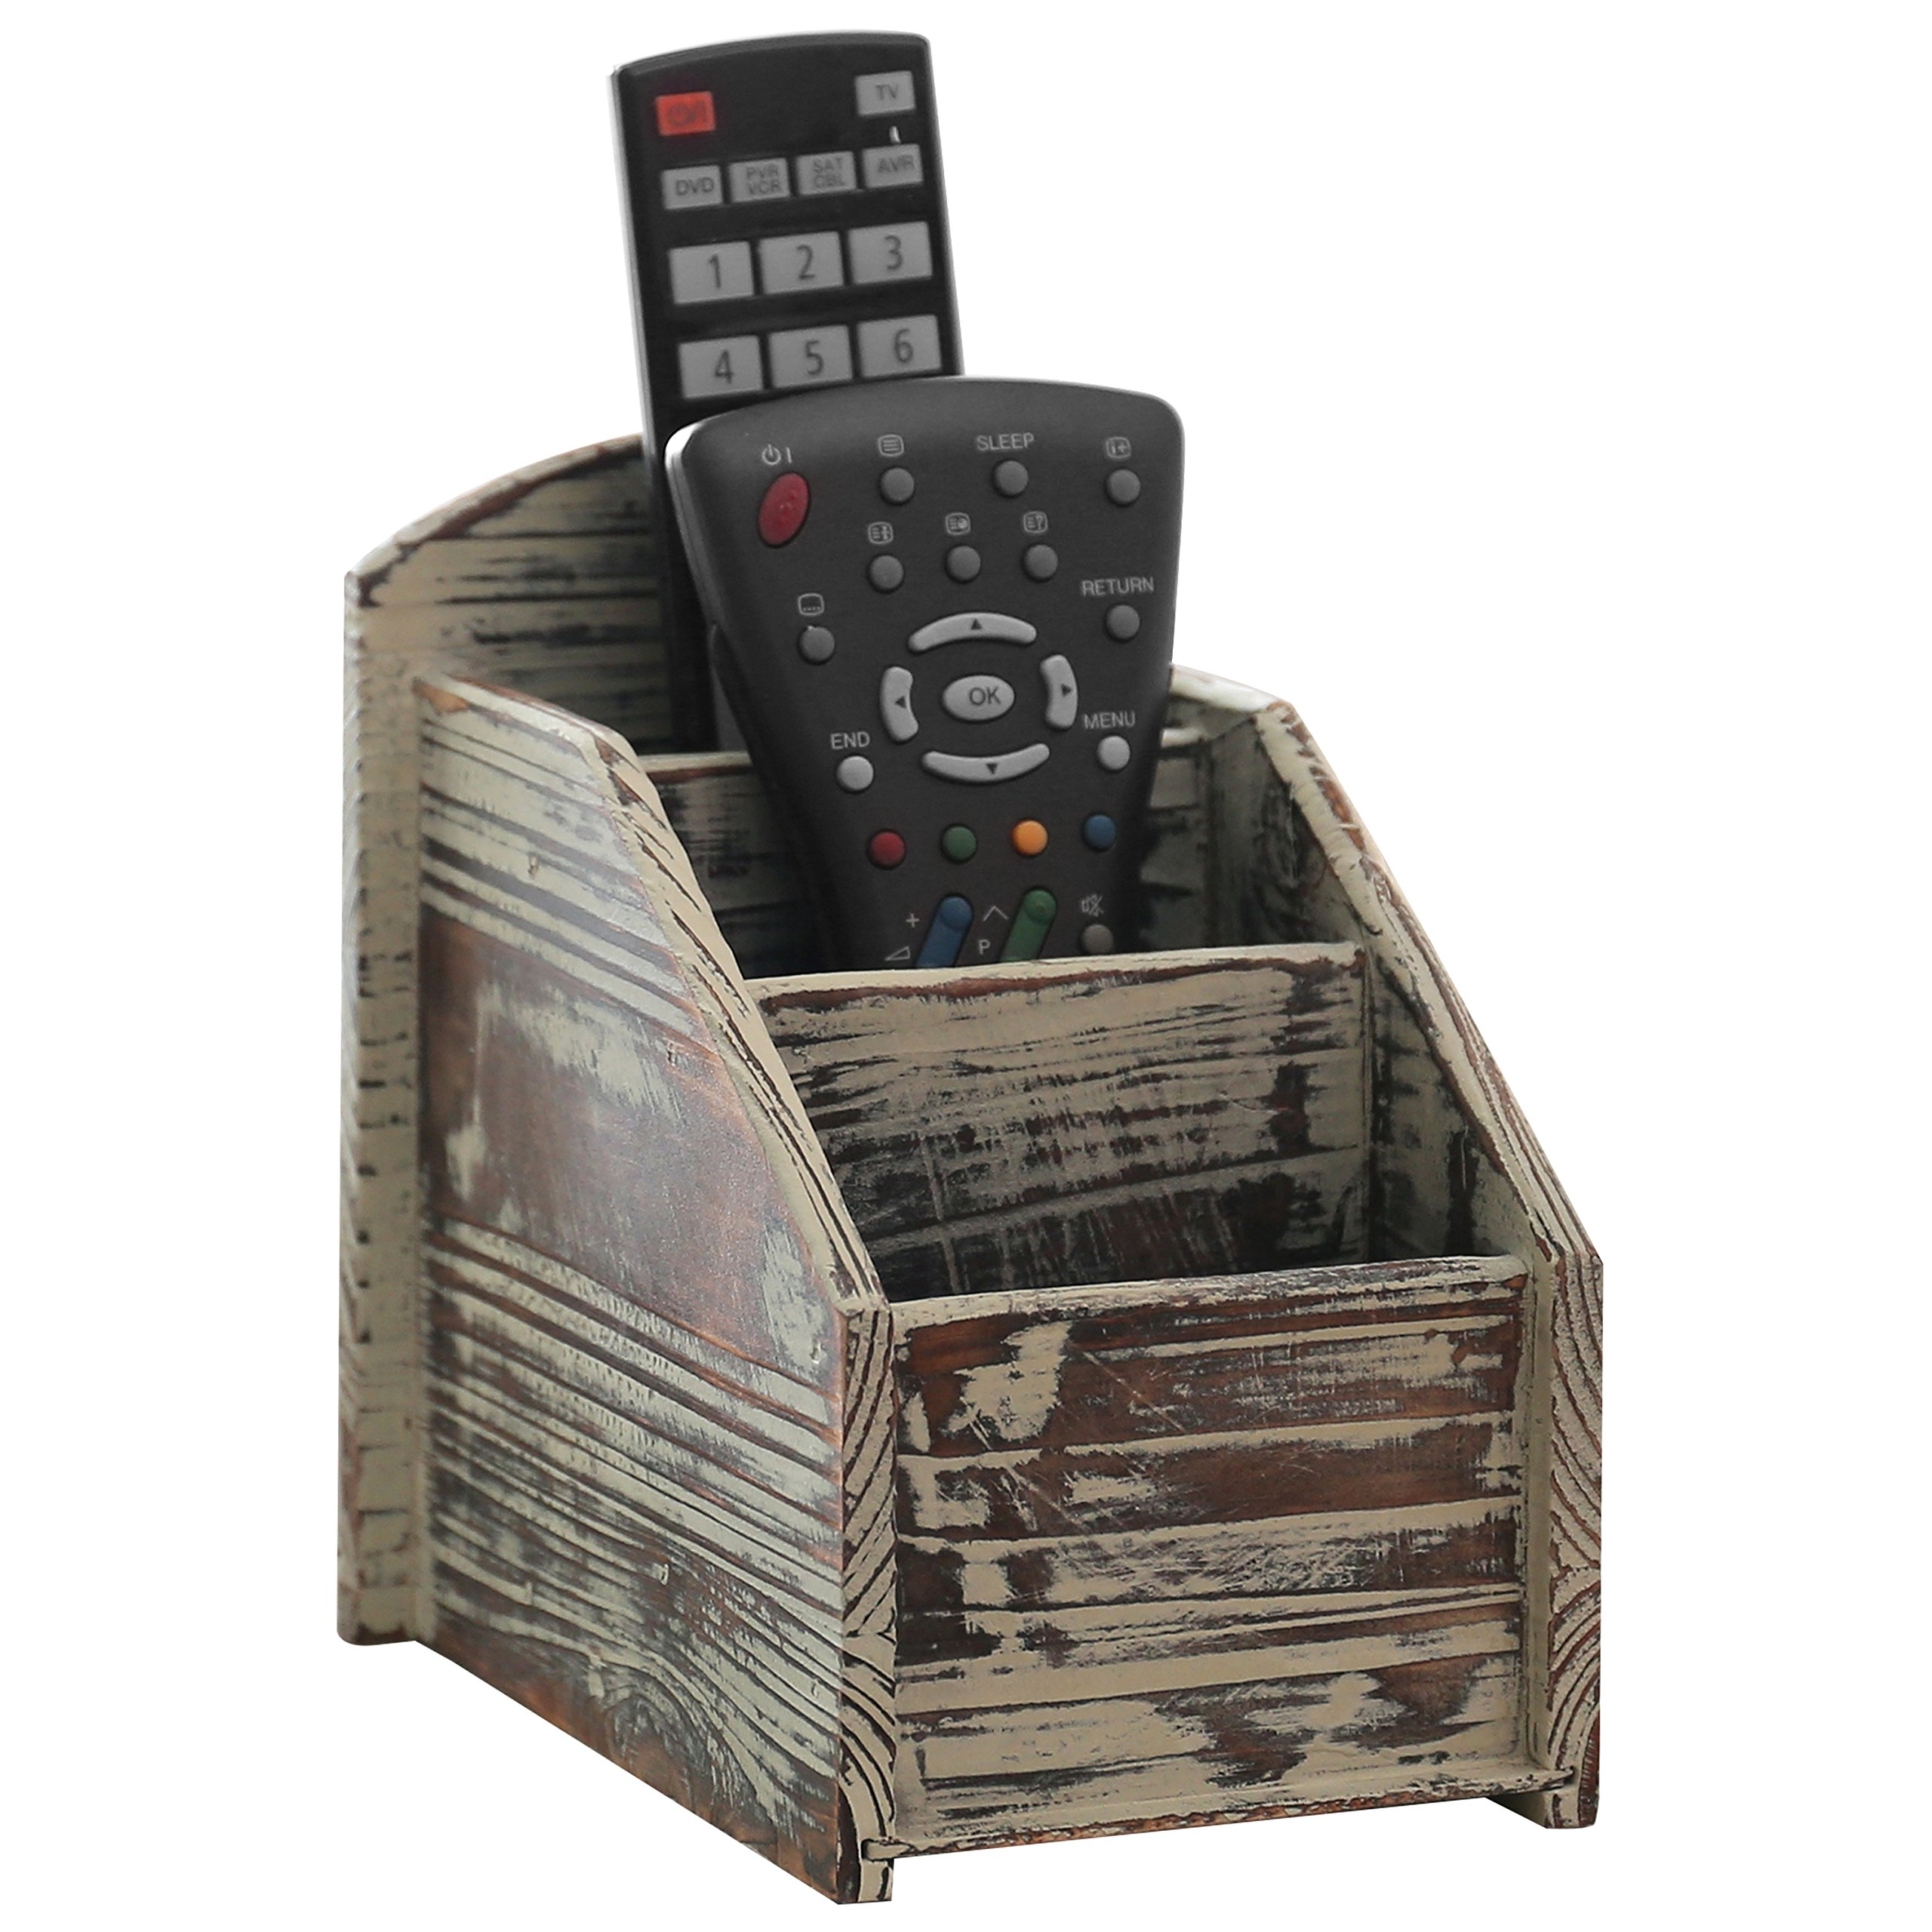 3 slot rustic torched wood remote control caddy media organizer office supply storage rack. Black Bedroom Furniture Sets. Home Design Ideas